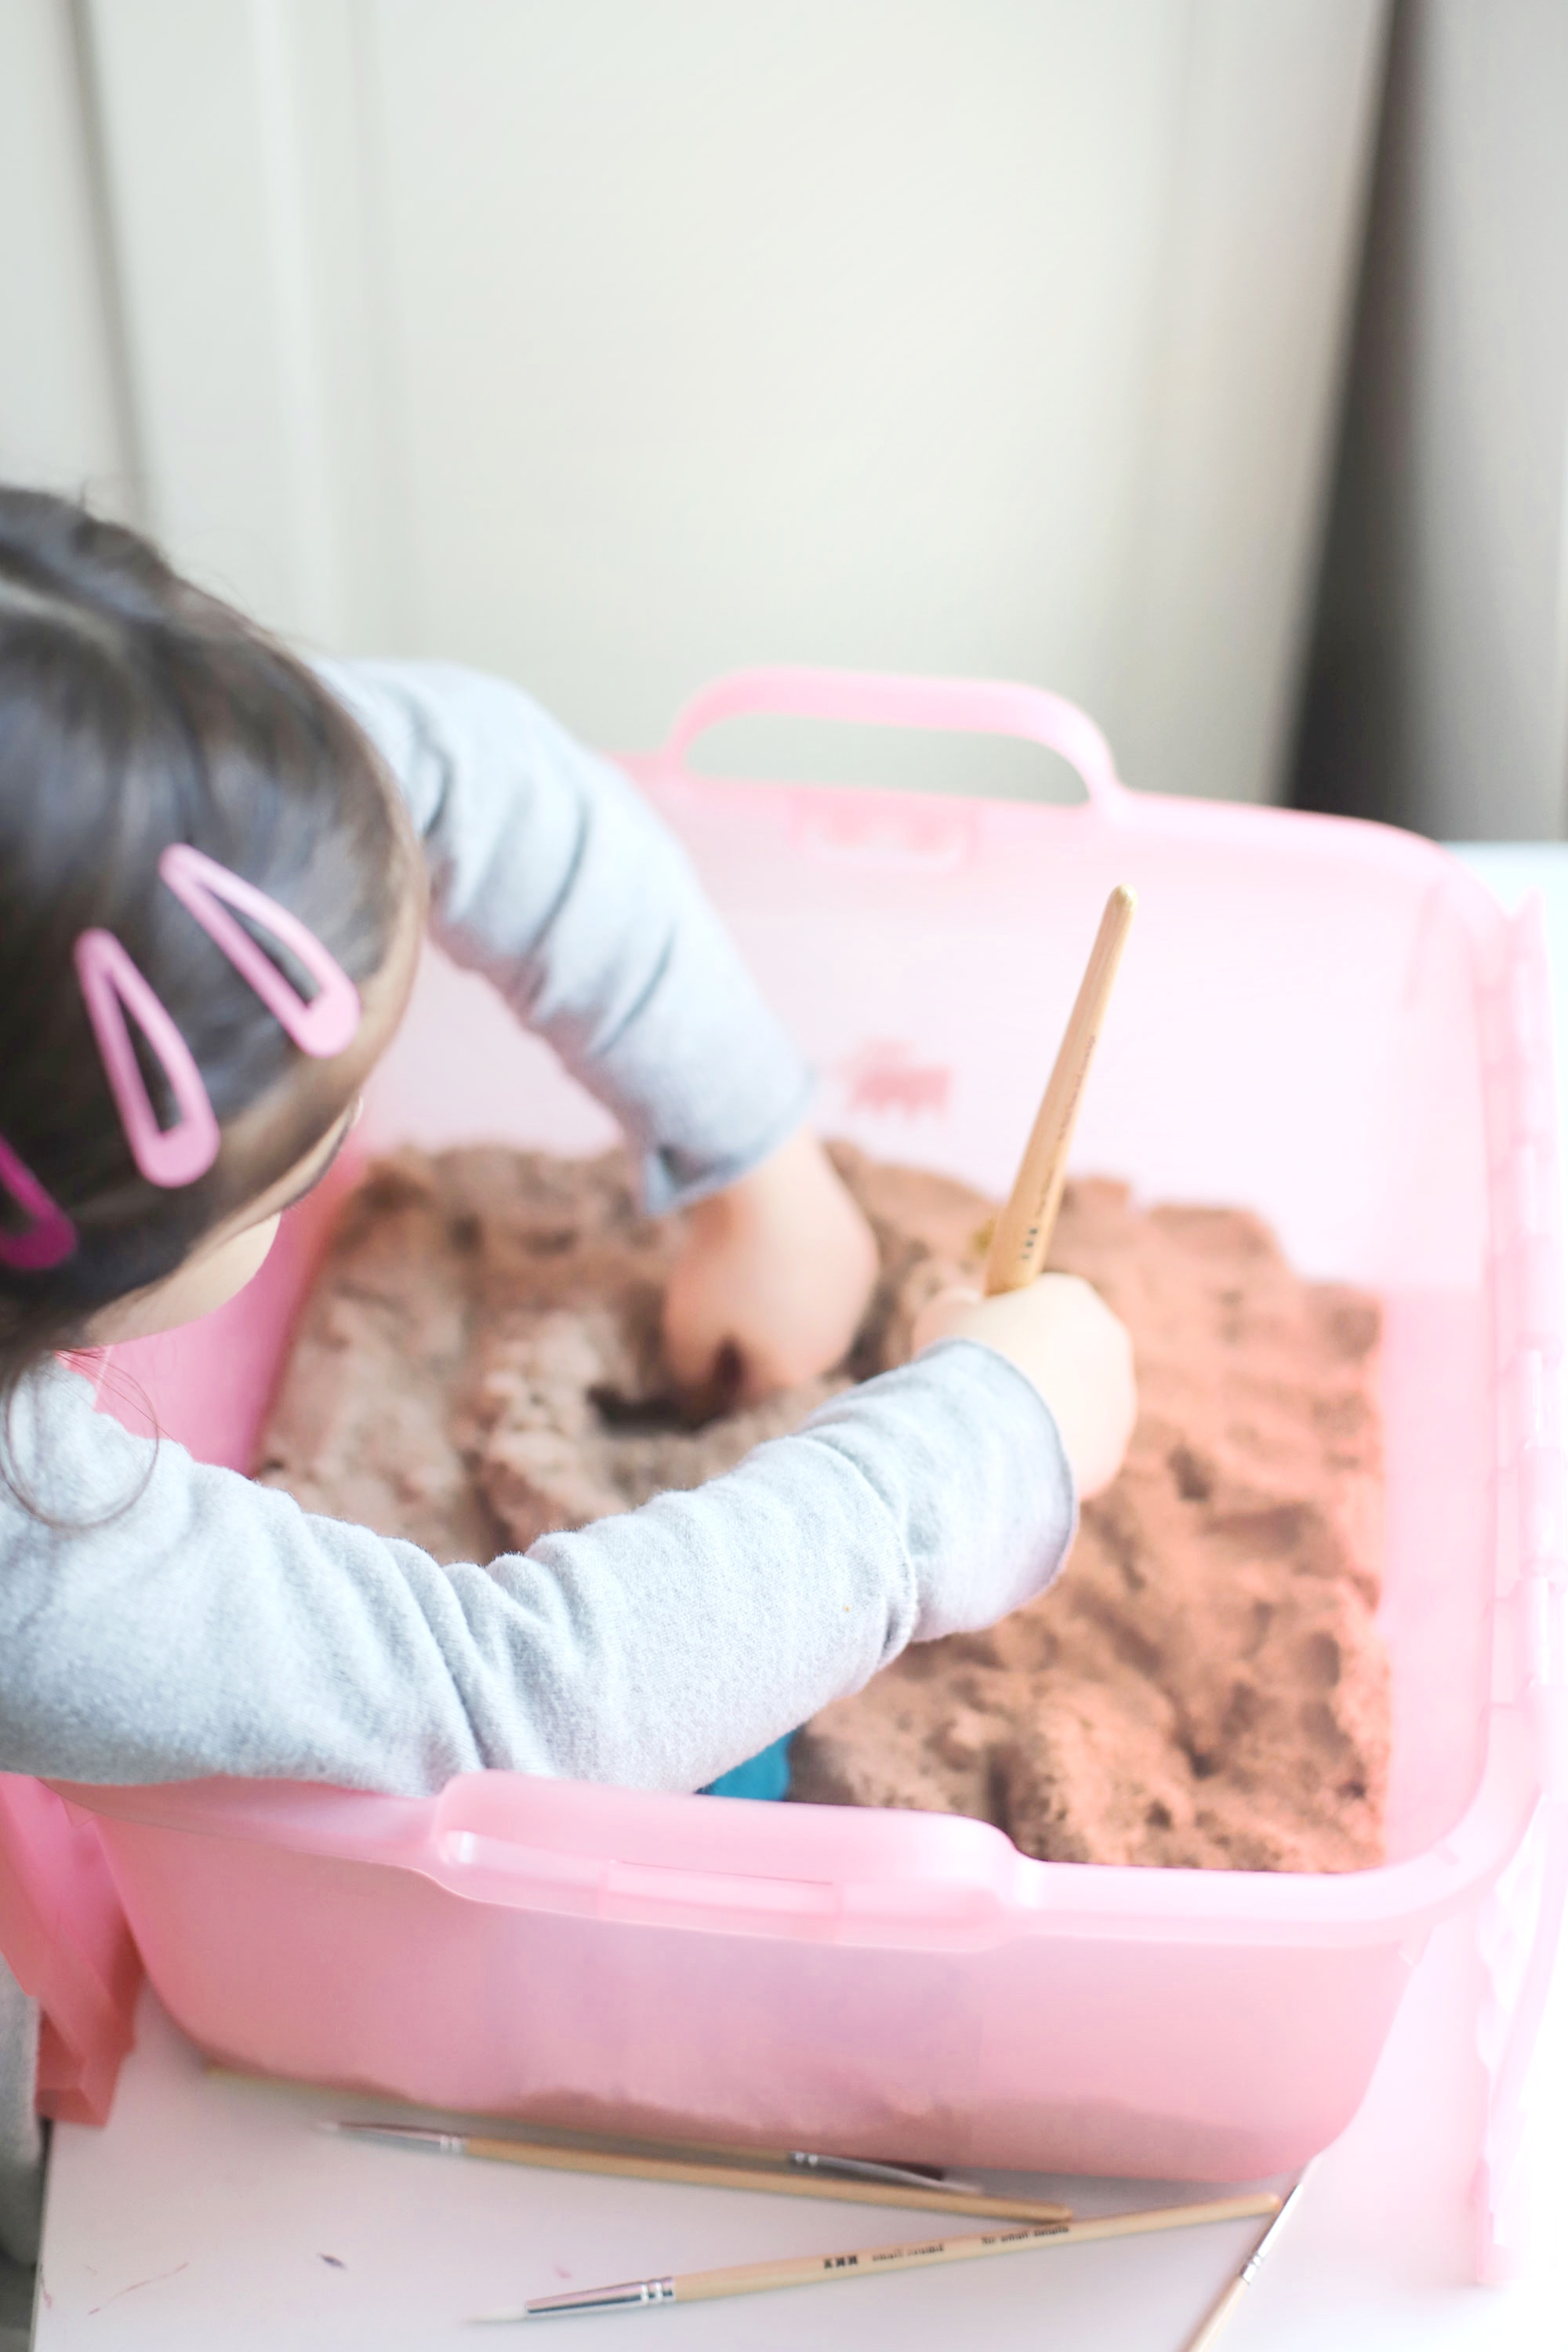 Create your own DIY kinetic sand dinosaur dig. This kids activity is an awesome, mostly mess-free way to dig into sensory play, all in one convenient bin